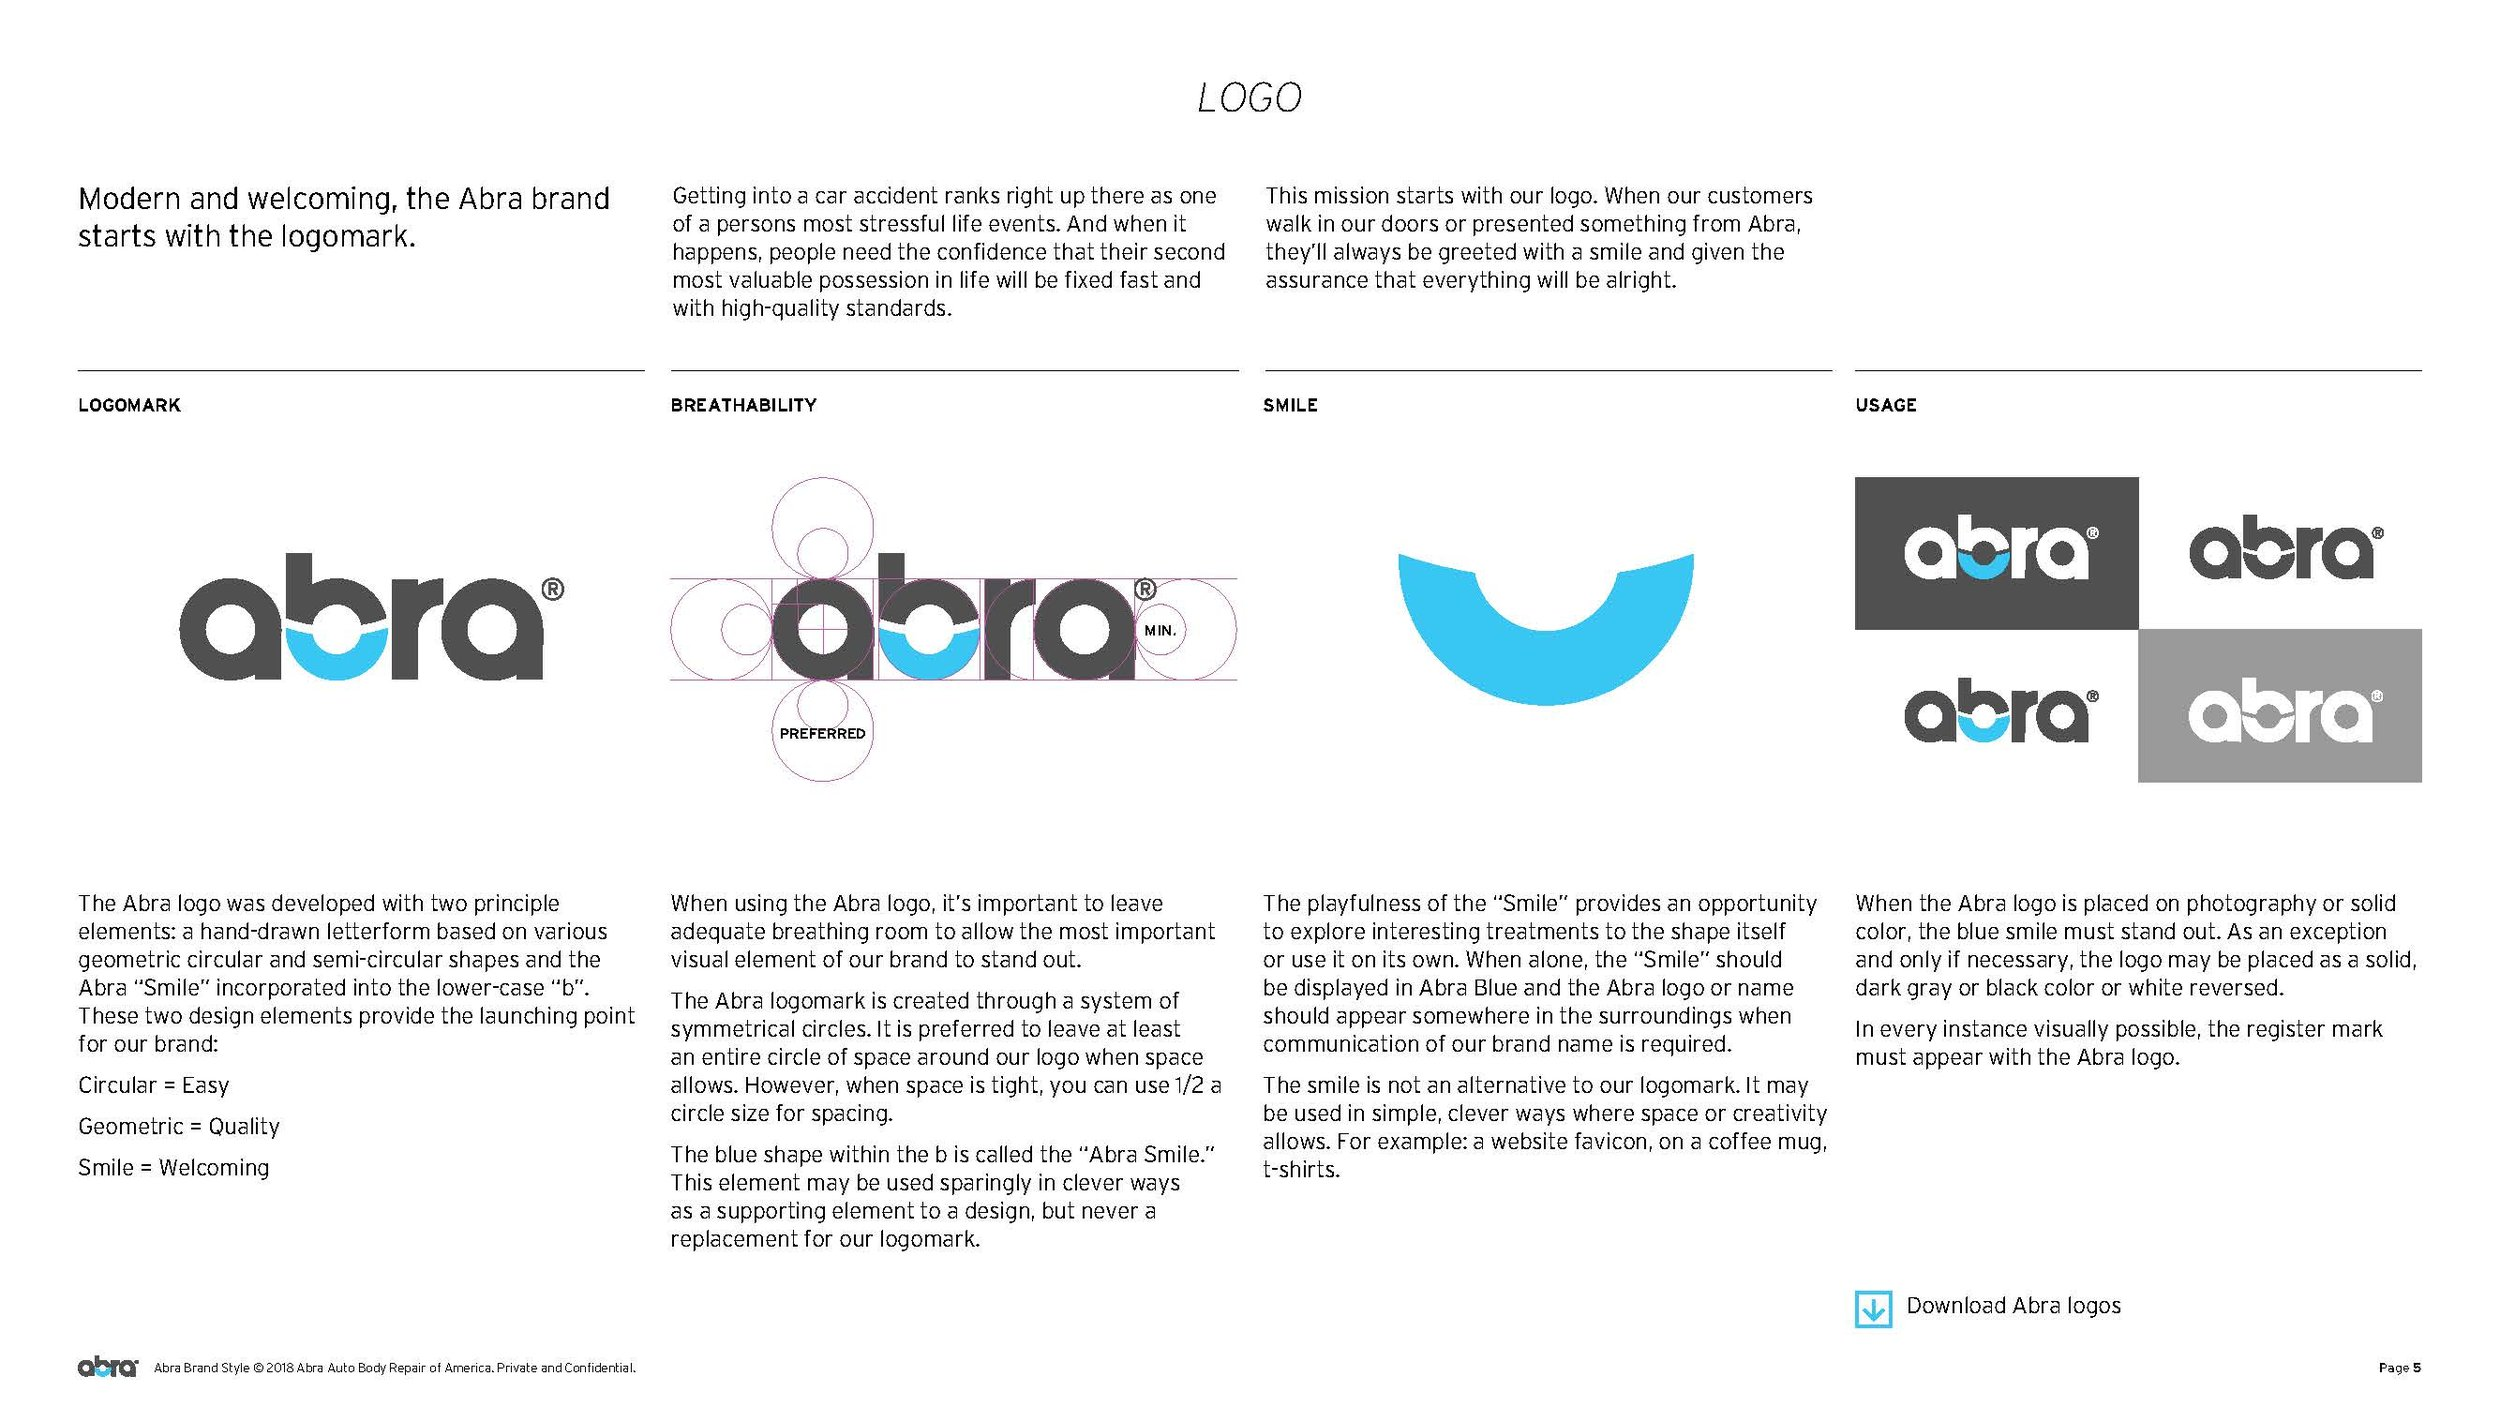 abra brand style guide - R5_Page_05.jpg